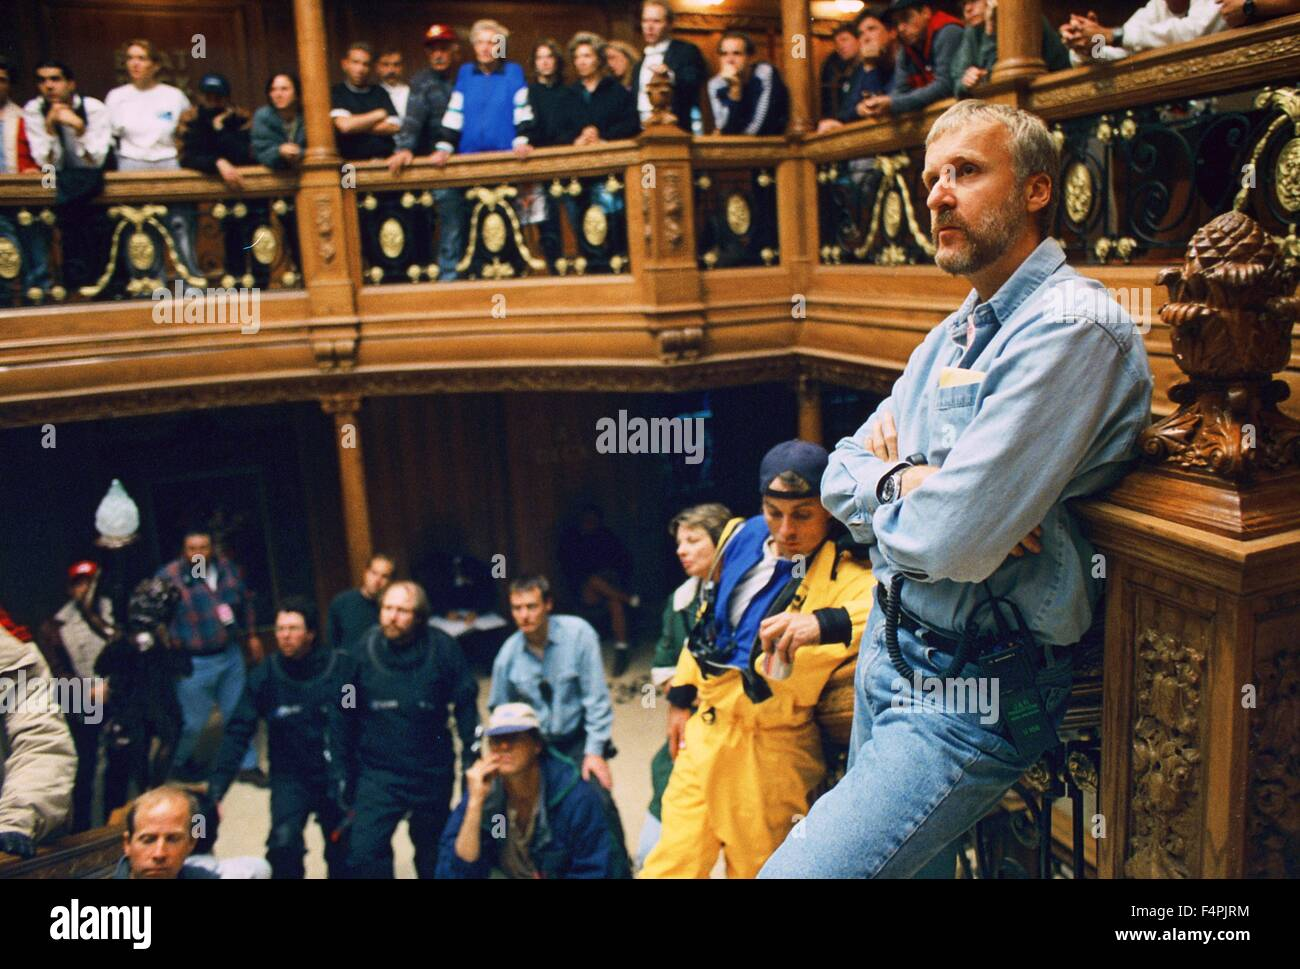 On the set, James Cameron / Titanic / 1997 directed by James Cameron [Twentieth Century Fox Pictures] - Stock Image